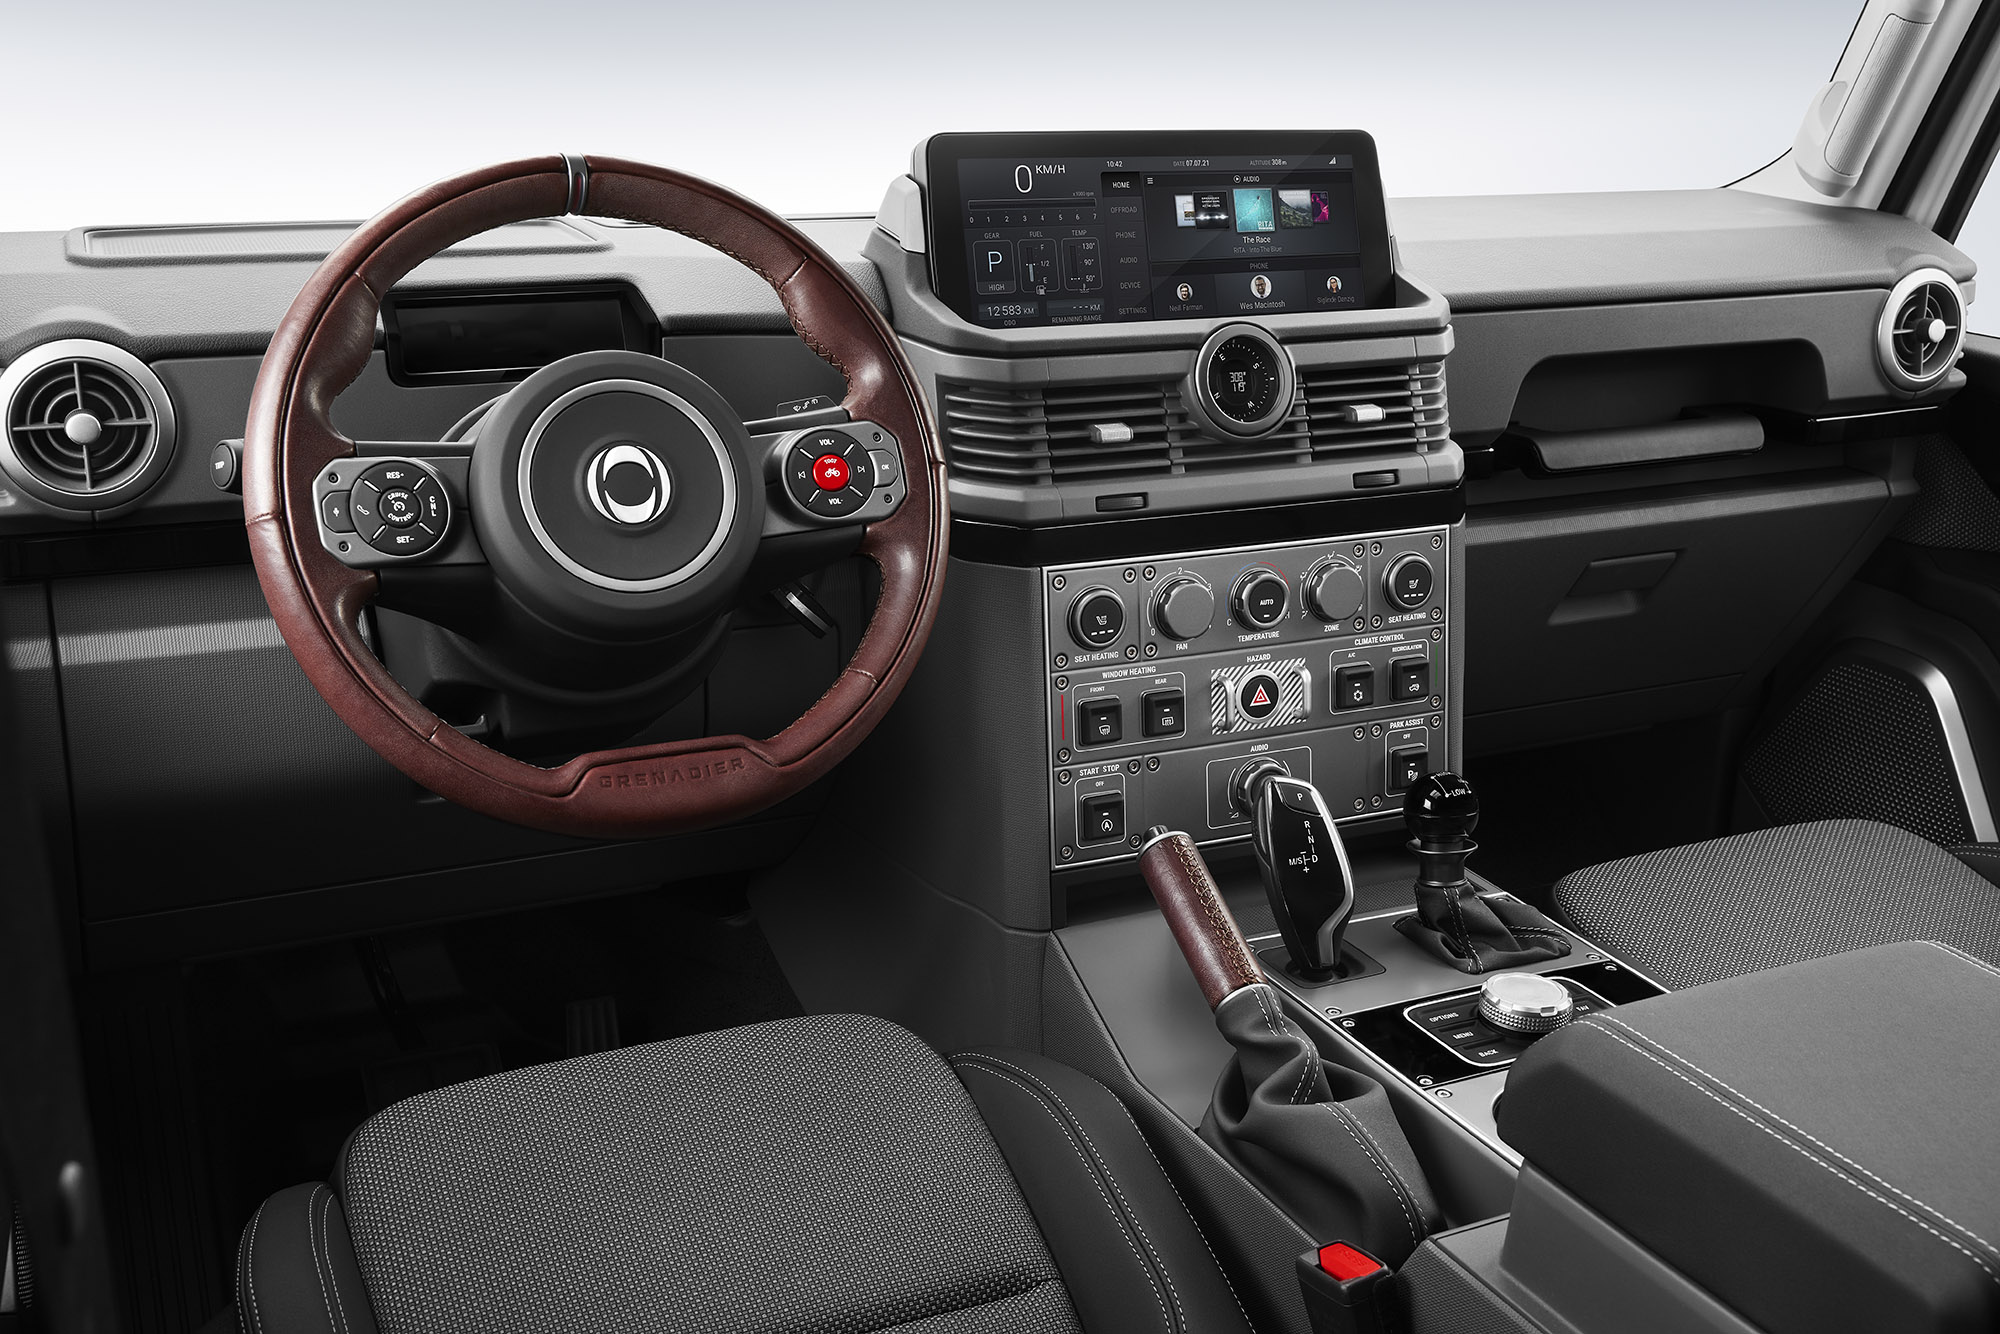 The INEOS Grenadier interior has blacks and grays and is simple, modern, intended.